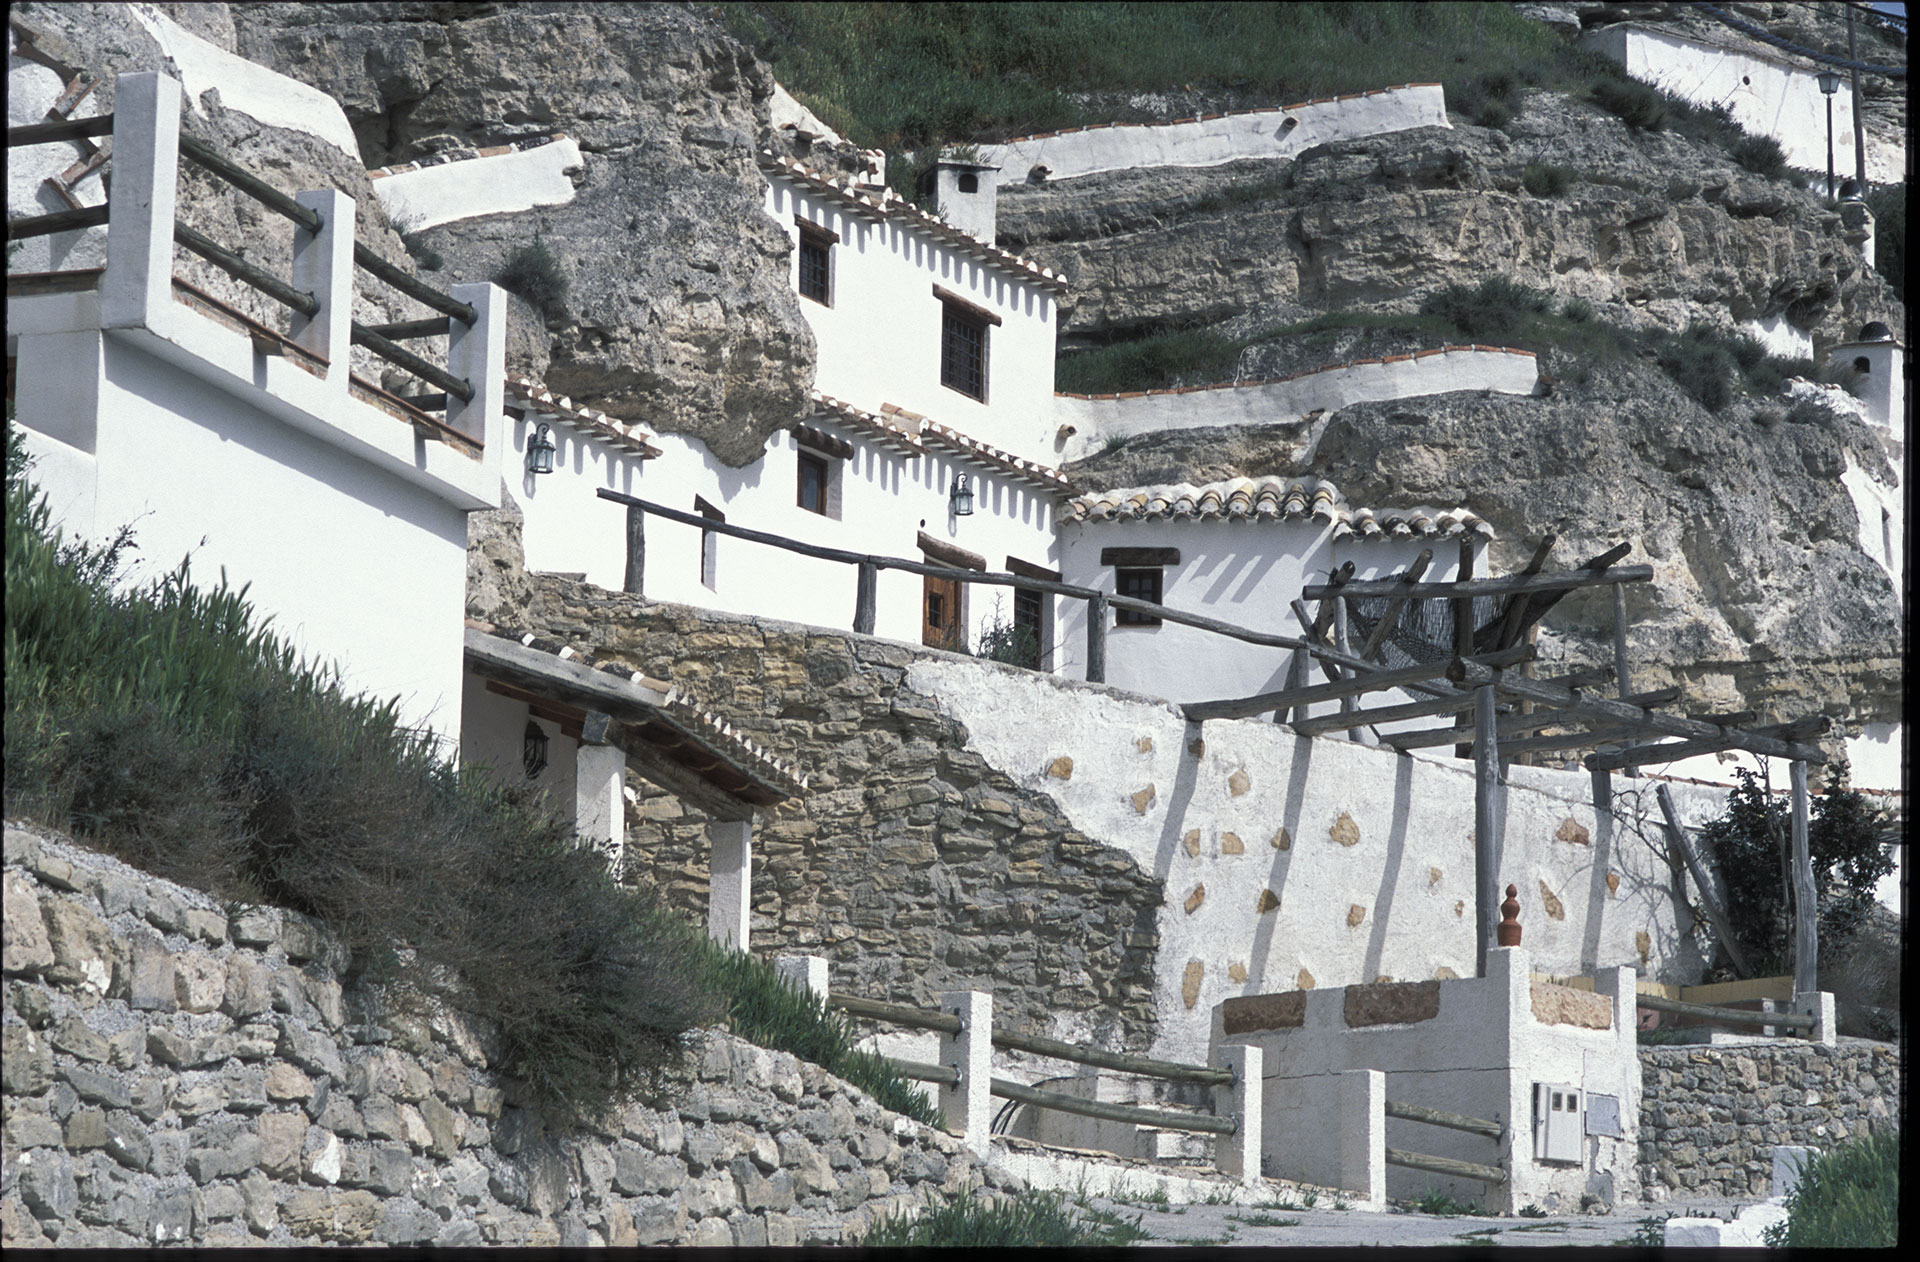 Cave house,galera, cave house andalusia,excursion andalusia,family activity holiday andalusia spain, Responsible travel